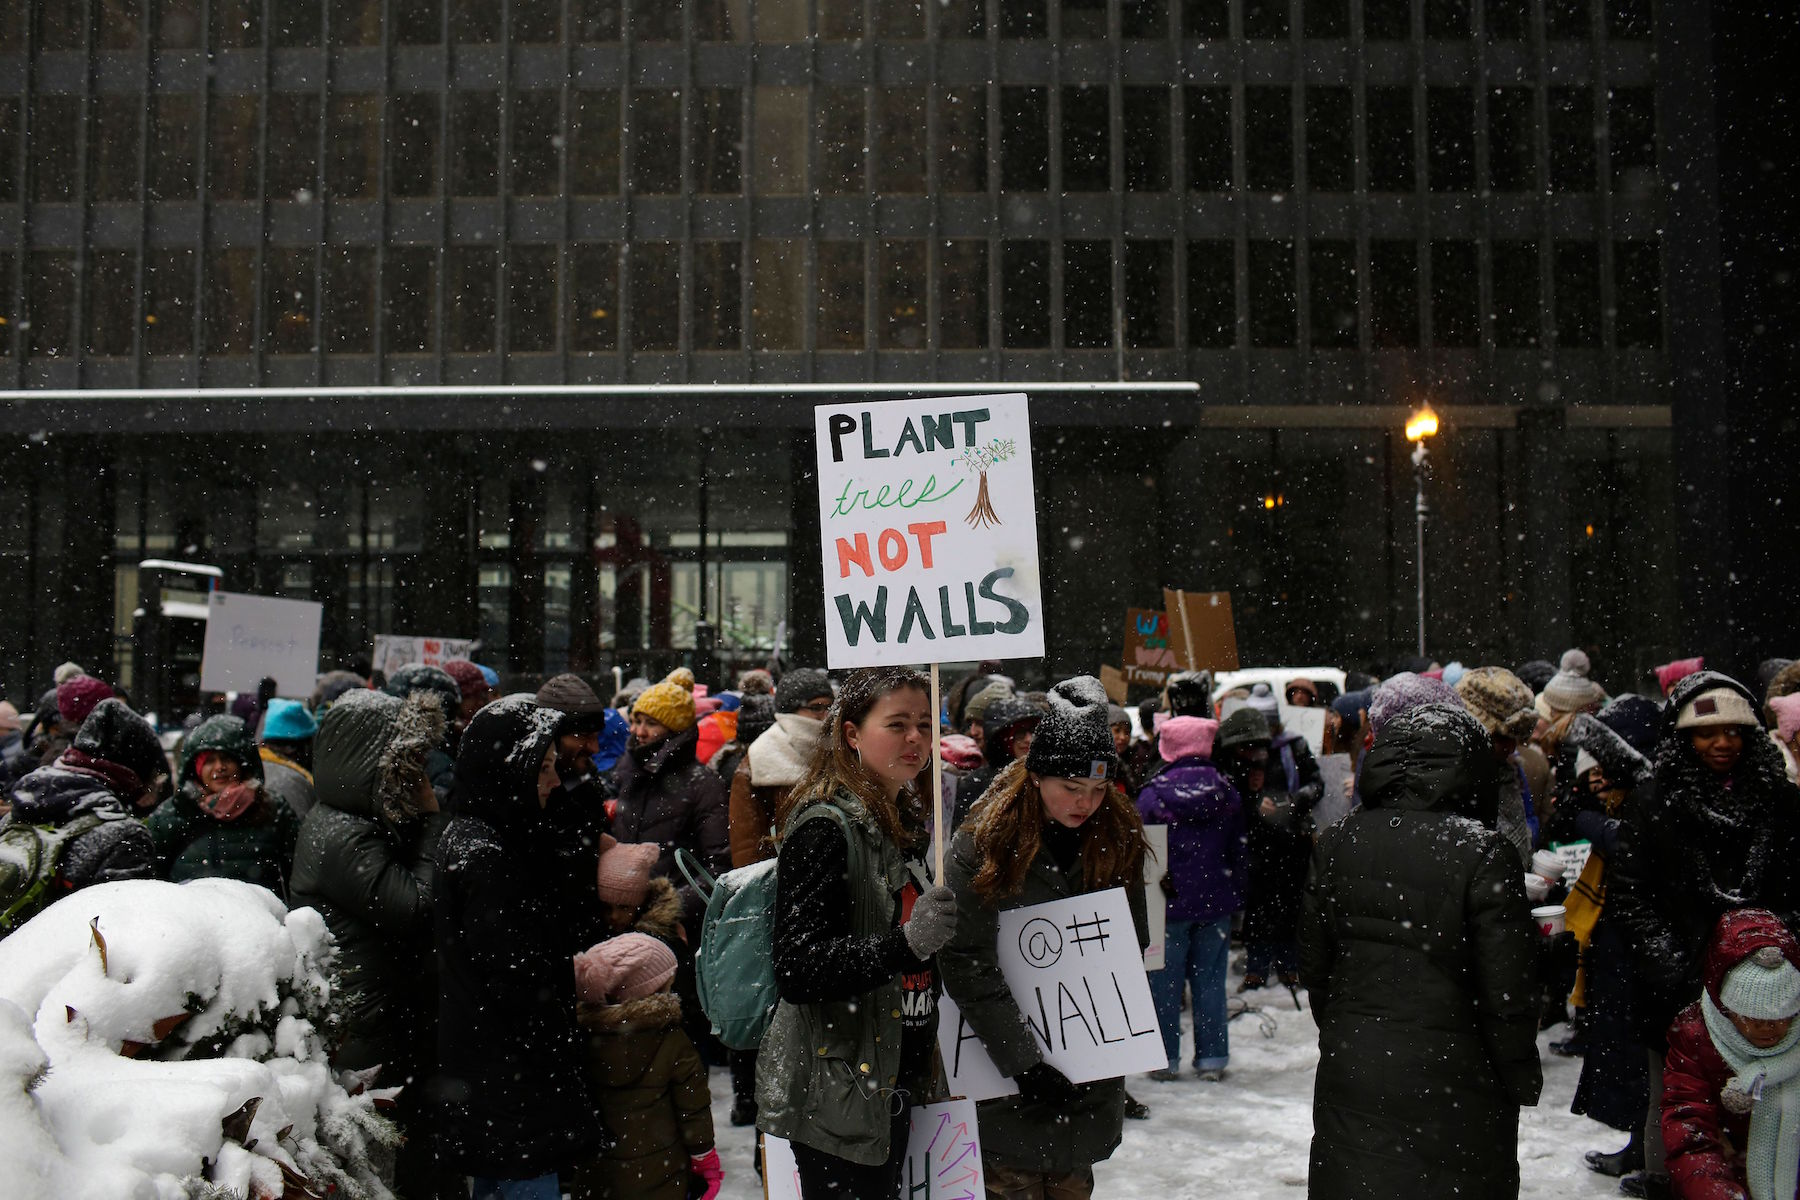 "<div class=""meta image-caption""><div class=""origin-logo origin-image kabc""><span>kabc</span></div><span class=""caption-text"">Demonstrators gather during the Young Women's March at Federal Plaza on January 19, 2019 in Chicago, Illinois. (Joshua Lott/AFP/Getty Images)</span></div>"